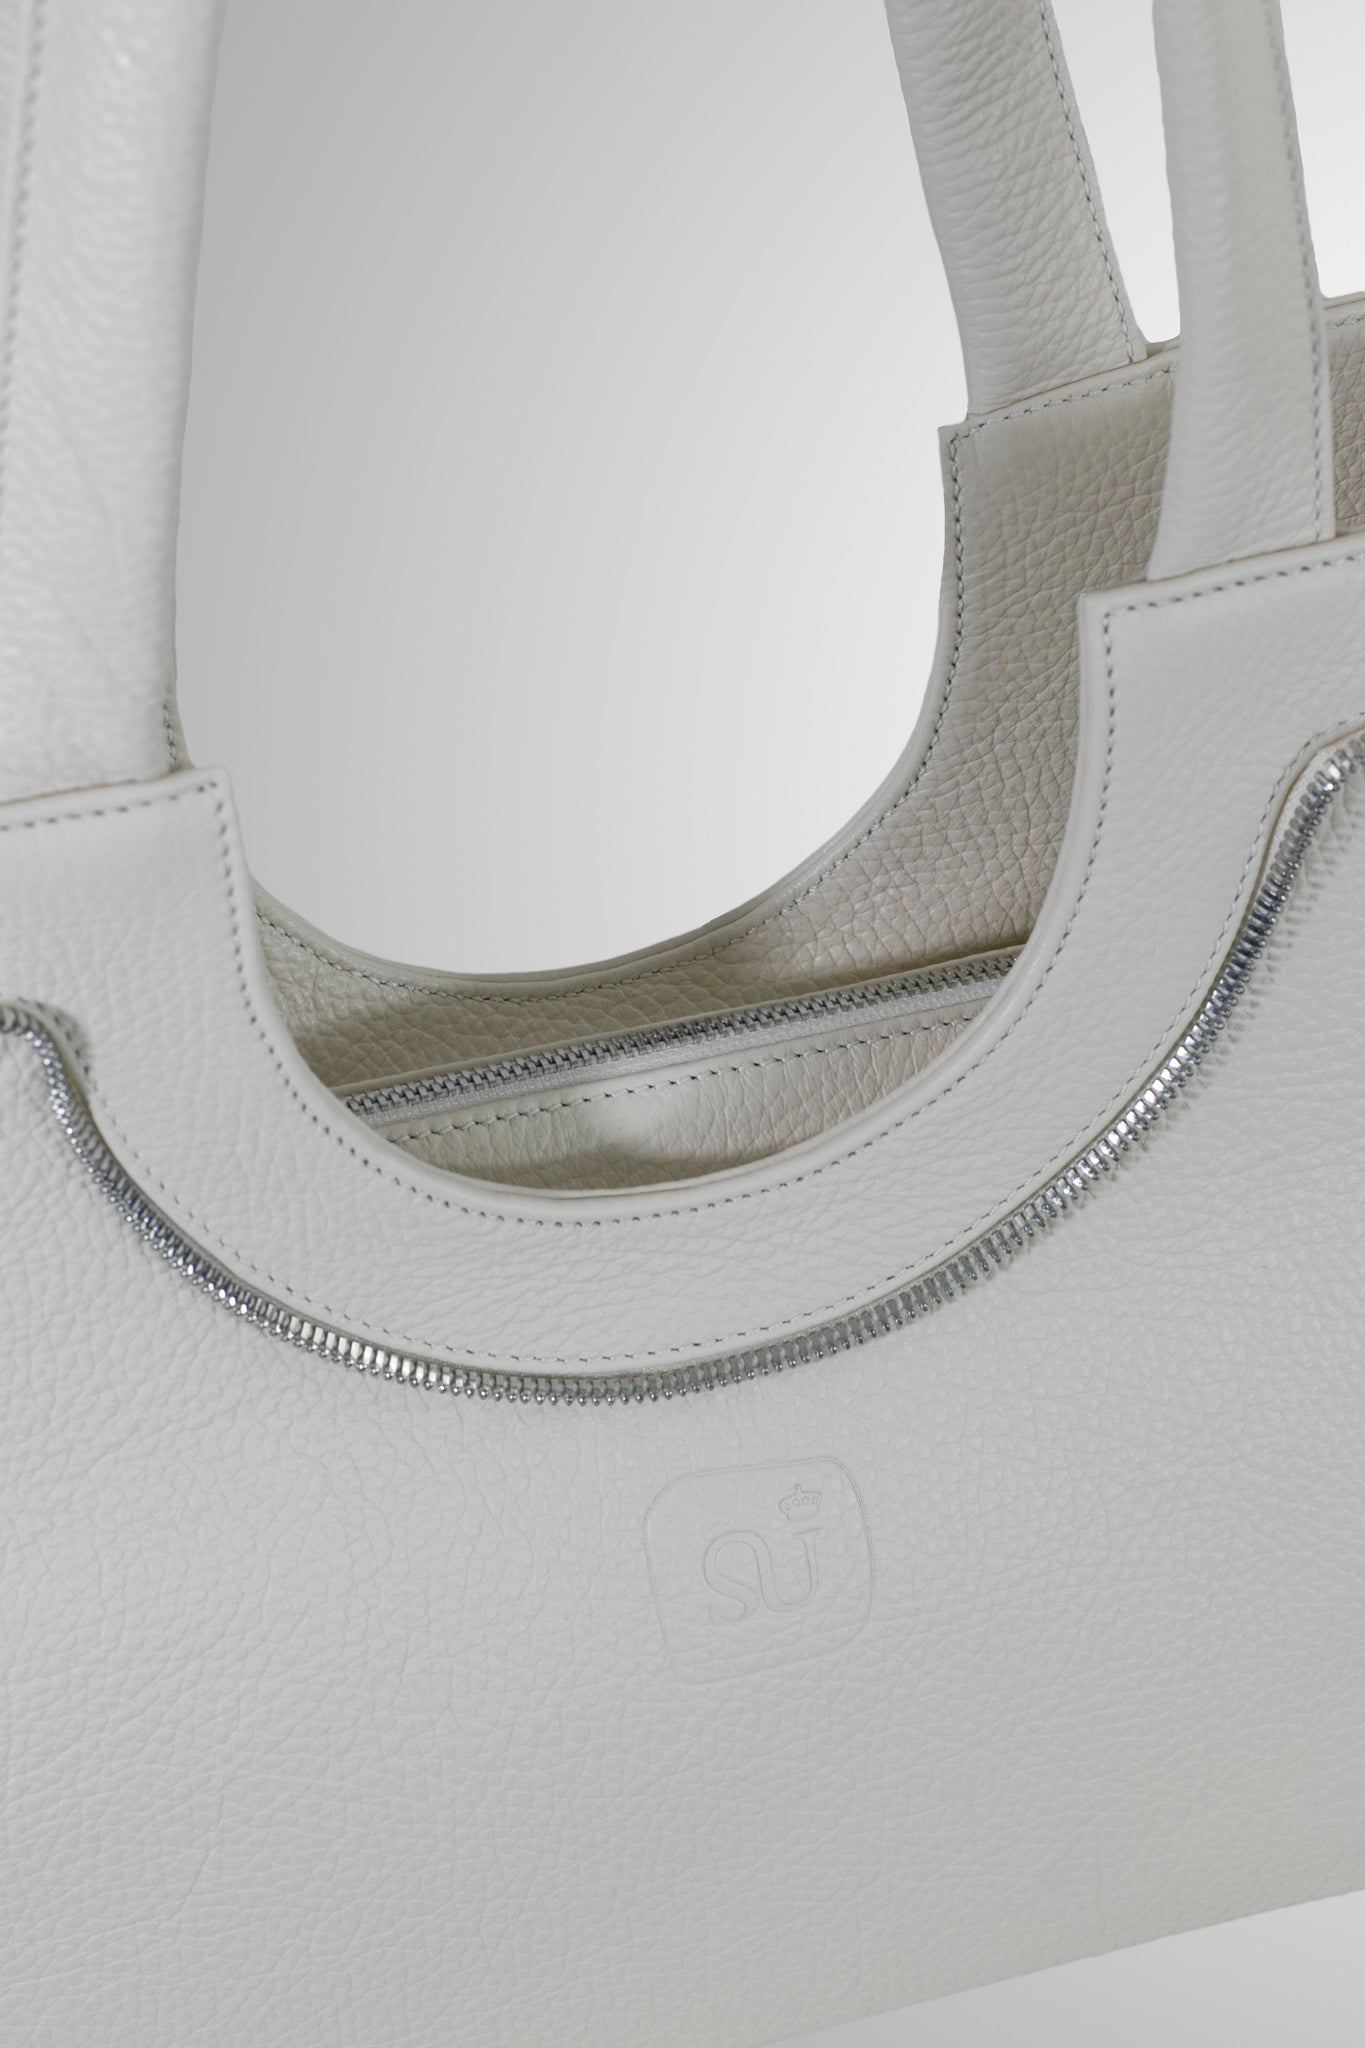 Bags-by-Sumageza-Shoulderbag-Le-Zip-comfortable-shoulder-bag-in-light-beige-calf-leather-detail-of-bag-front-shown-with-zip-transformed-into-and-used-as-decor-element